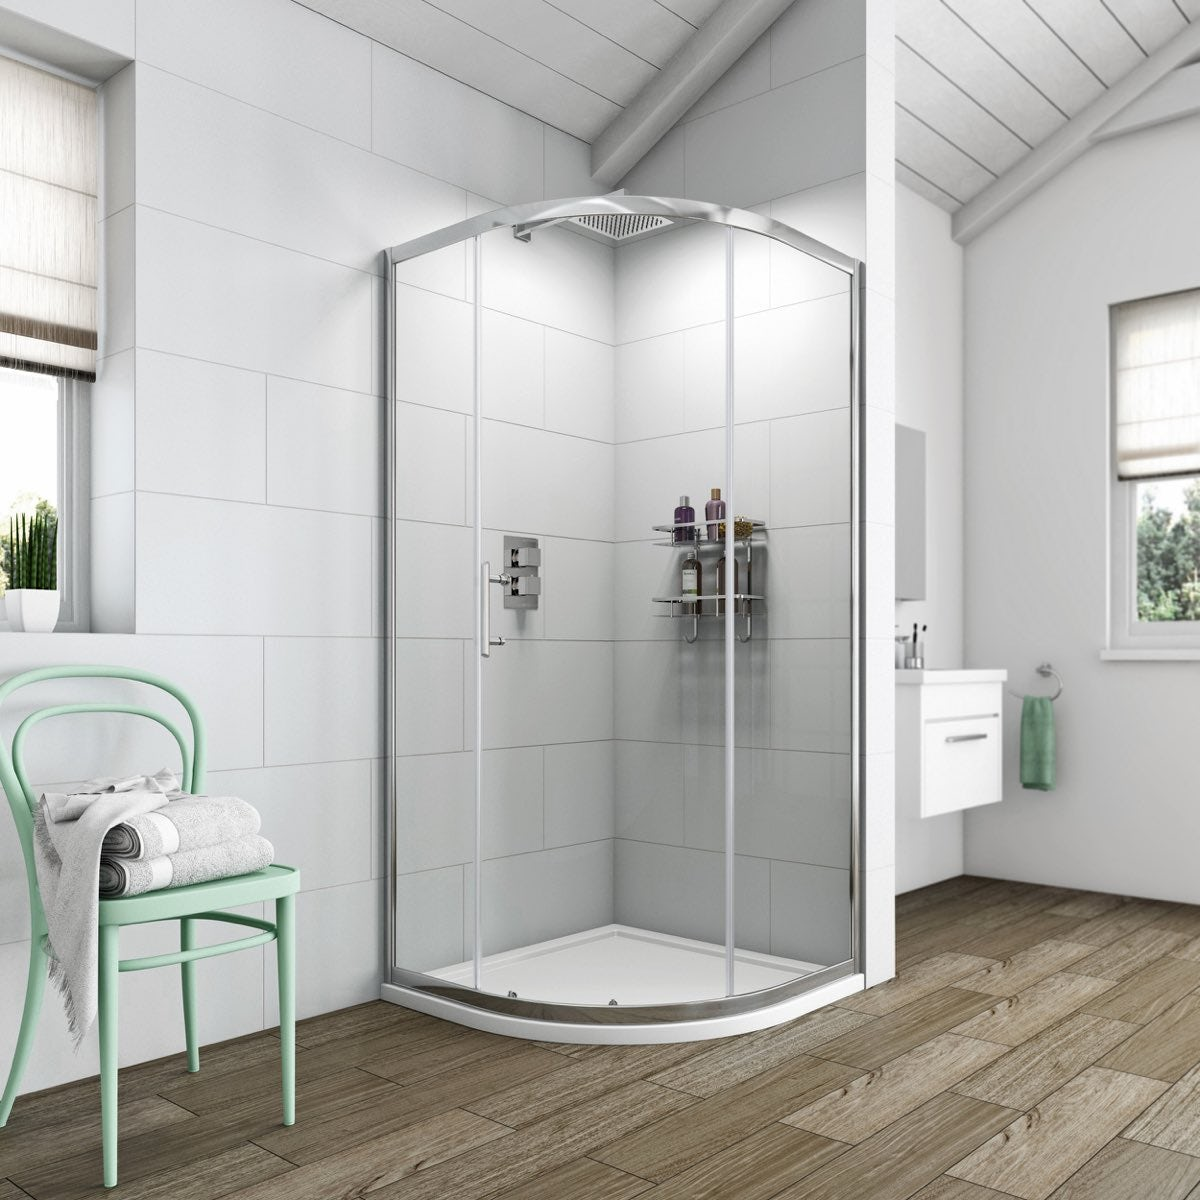 Clarity 6mm Single Quadrant Shower Enclosure